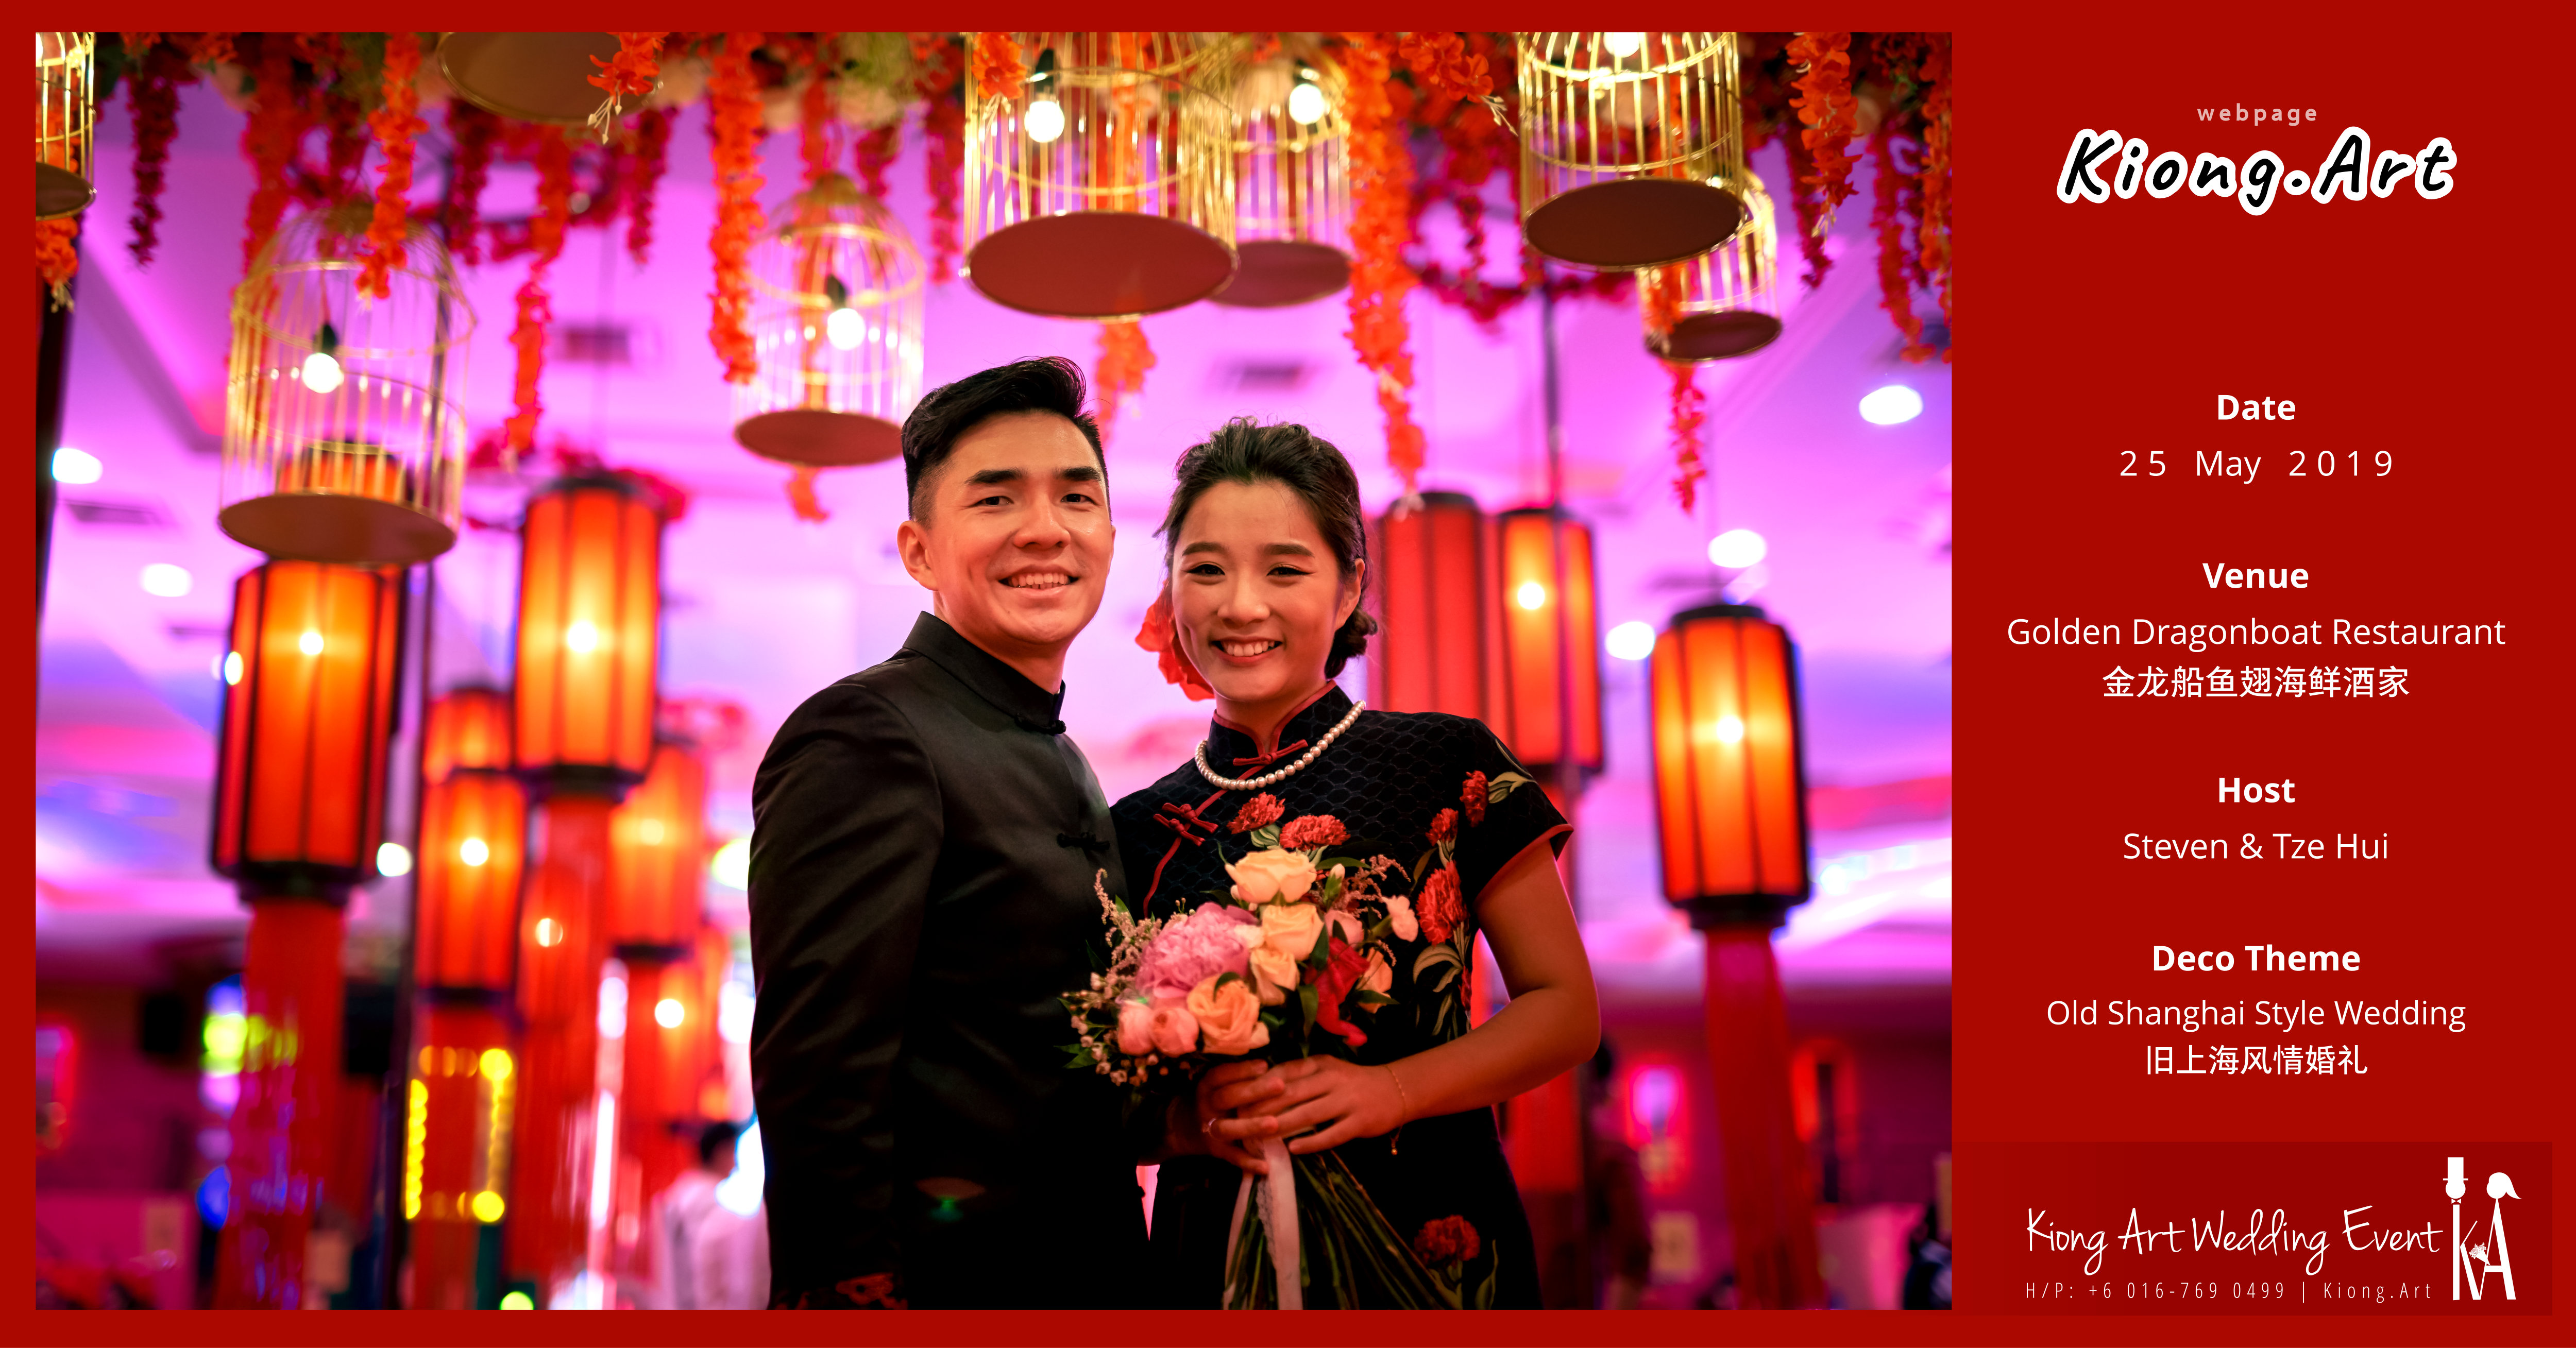 Kuala Lumpur Wedding Deco Decoration Kiong Art Wedding Deco Old Shanghai Style Wedding 旧上海风情婚礼 Steven and Tze Hui at Golden Dragonboat Restaurant 金龙船鱼翅海鲜酒家 Malaysia A16-A00-001